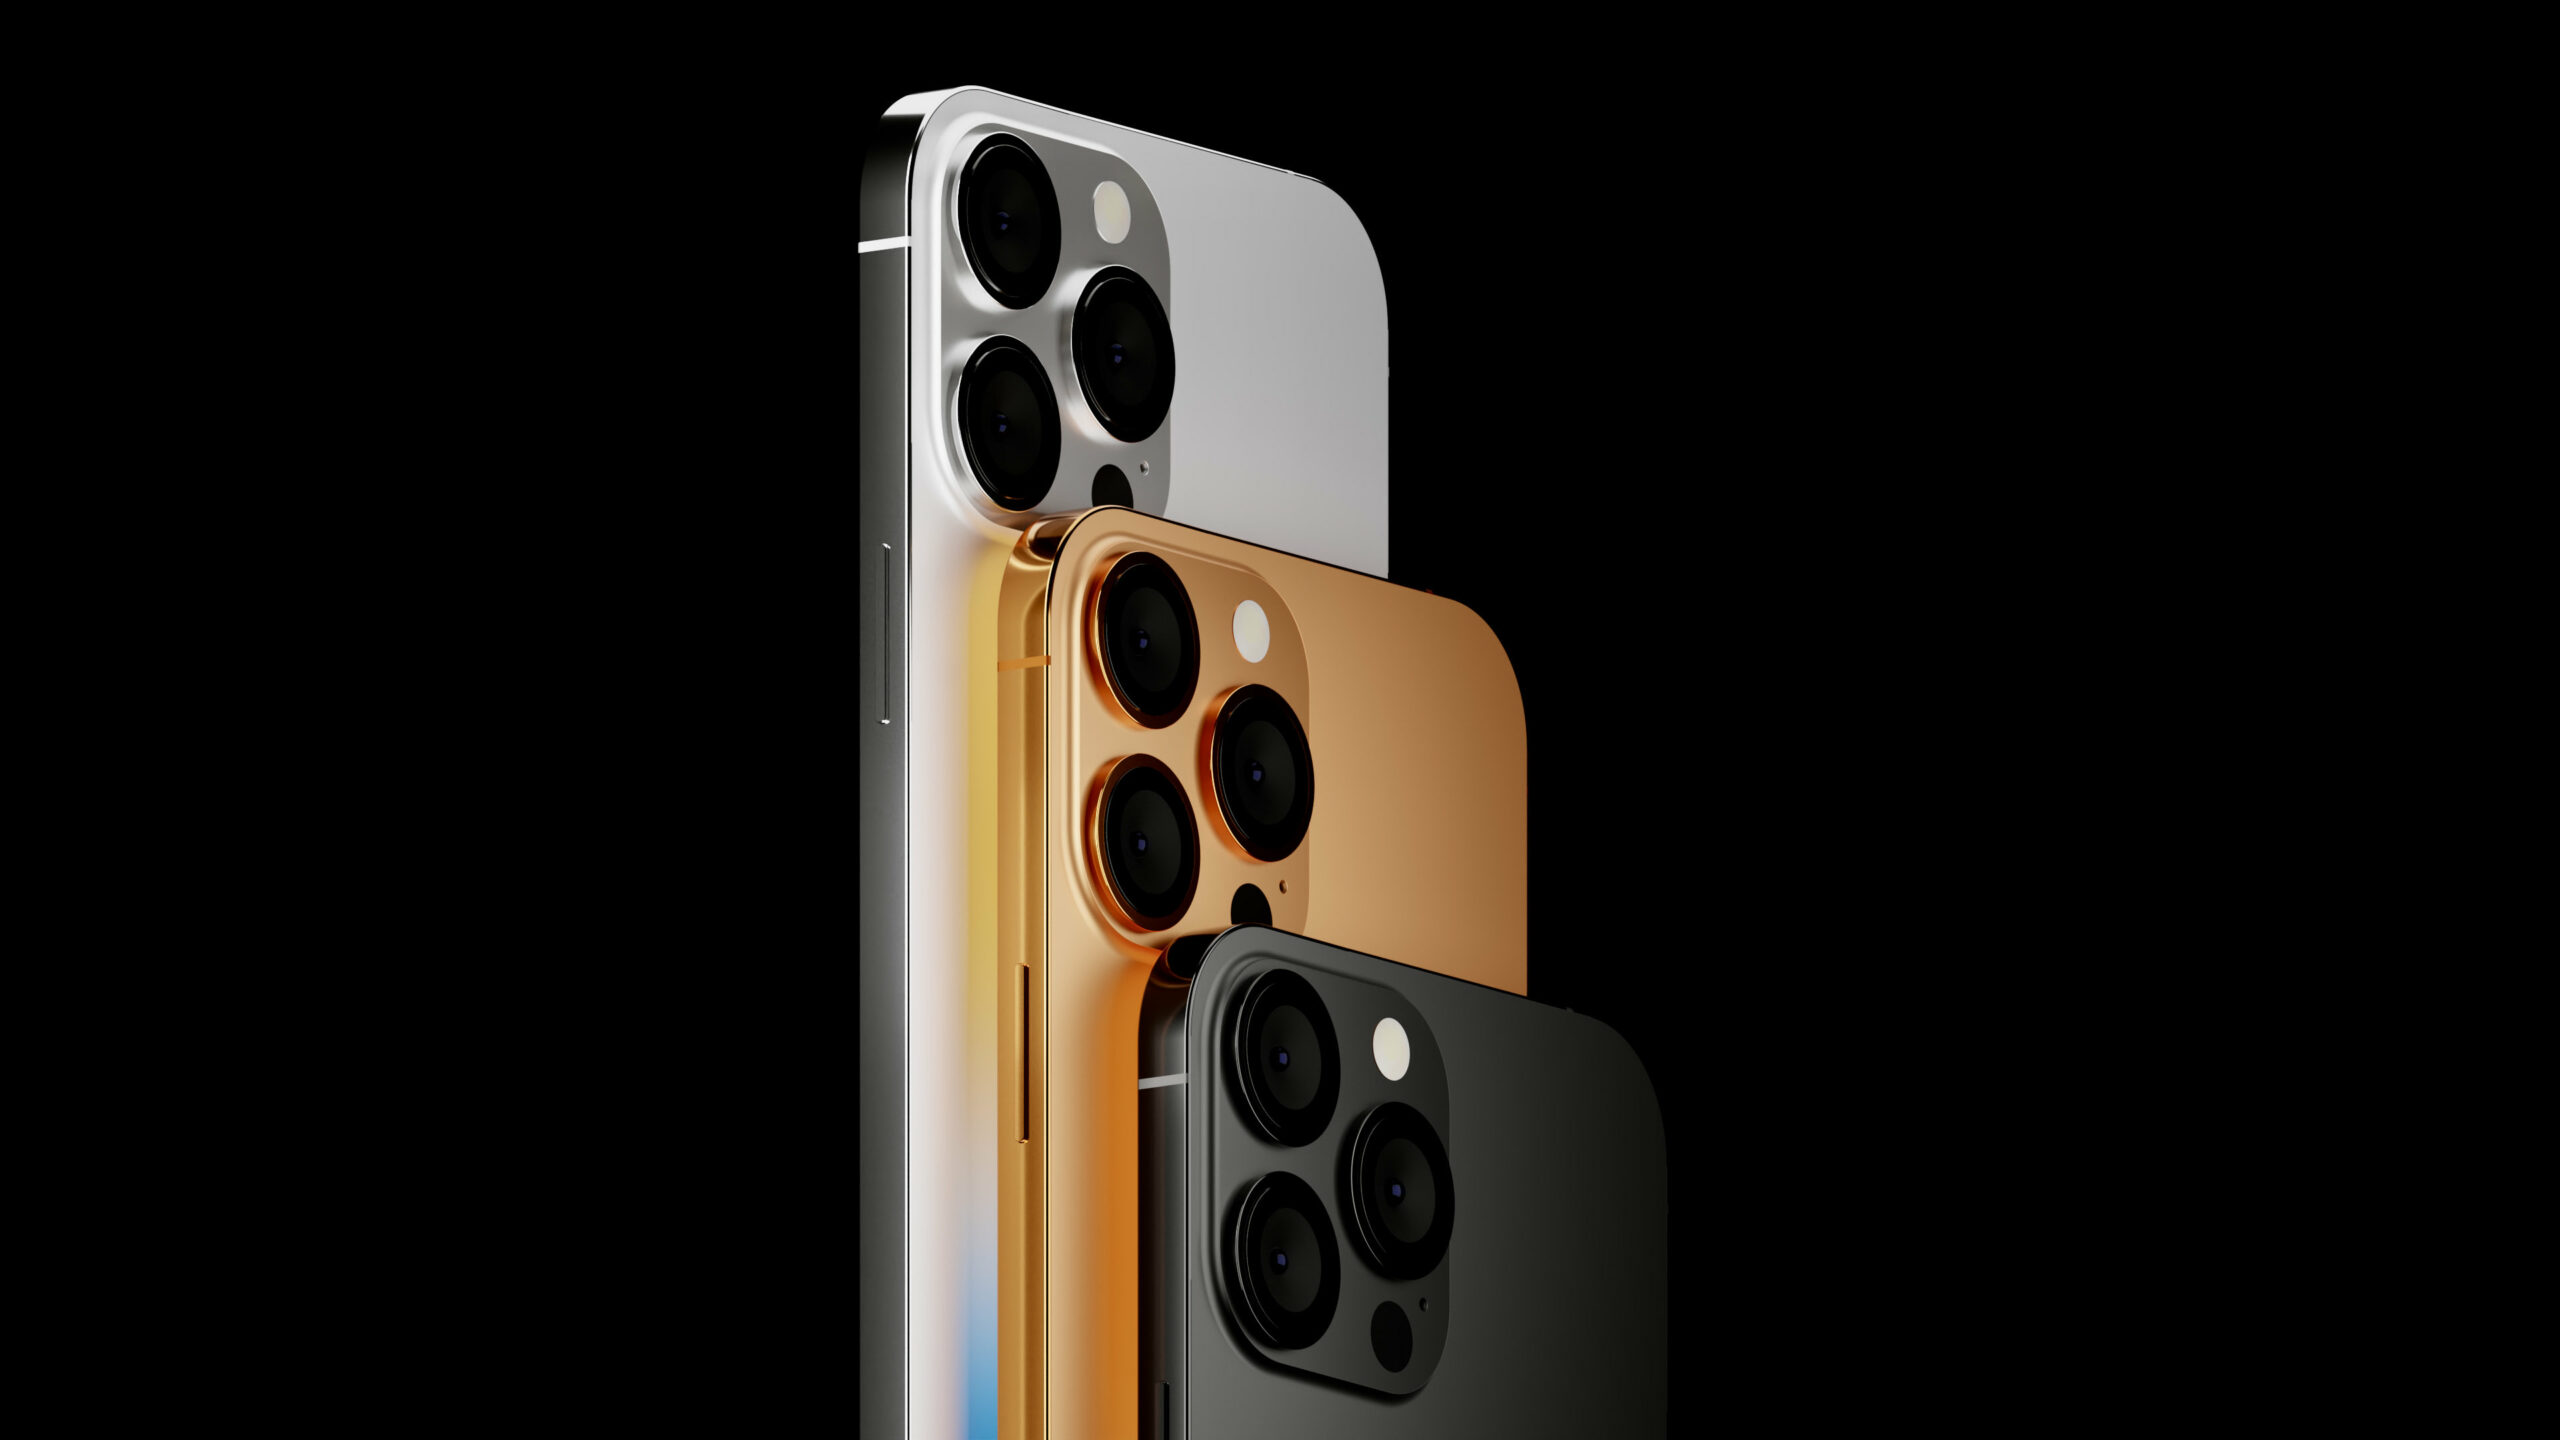 Apple iPhone 13 Pro with Ultra-wide camera with autofocus